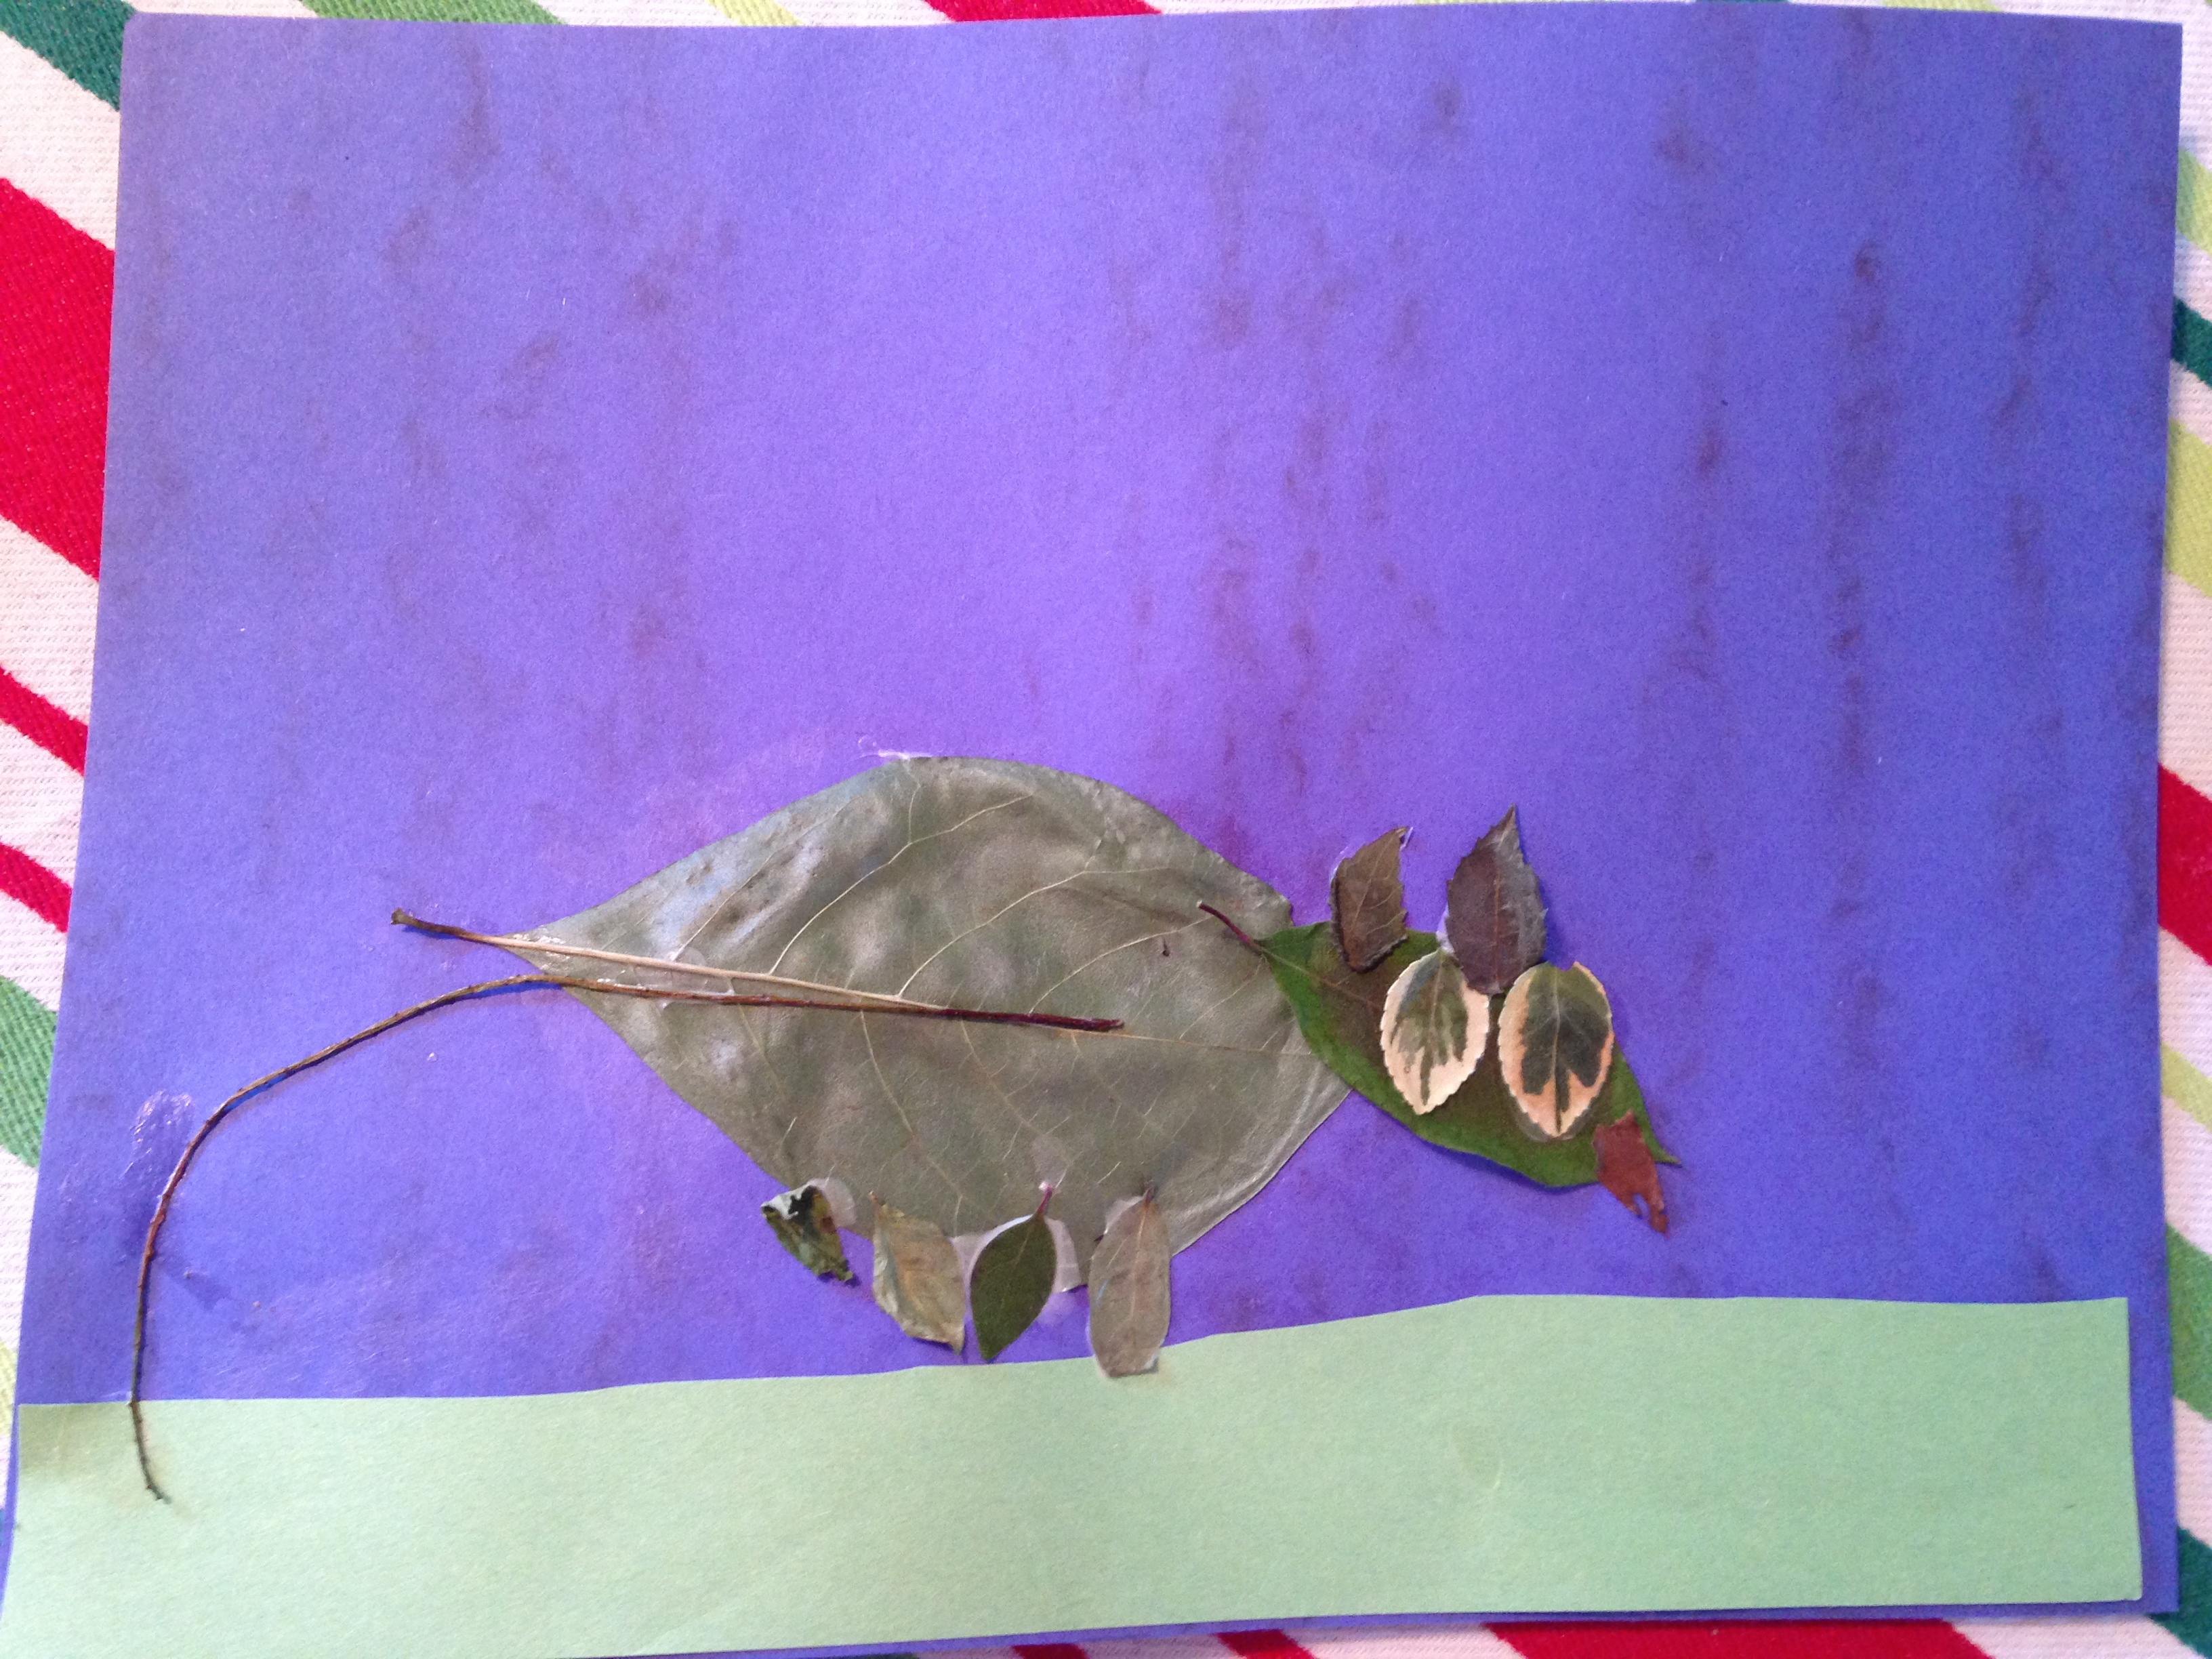 Bryant's leaf rat he made for a science project.